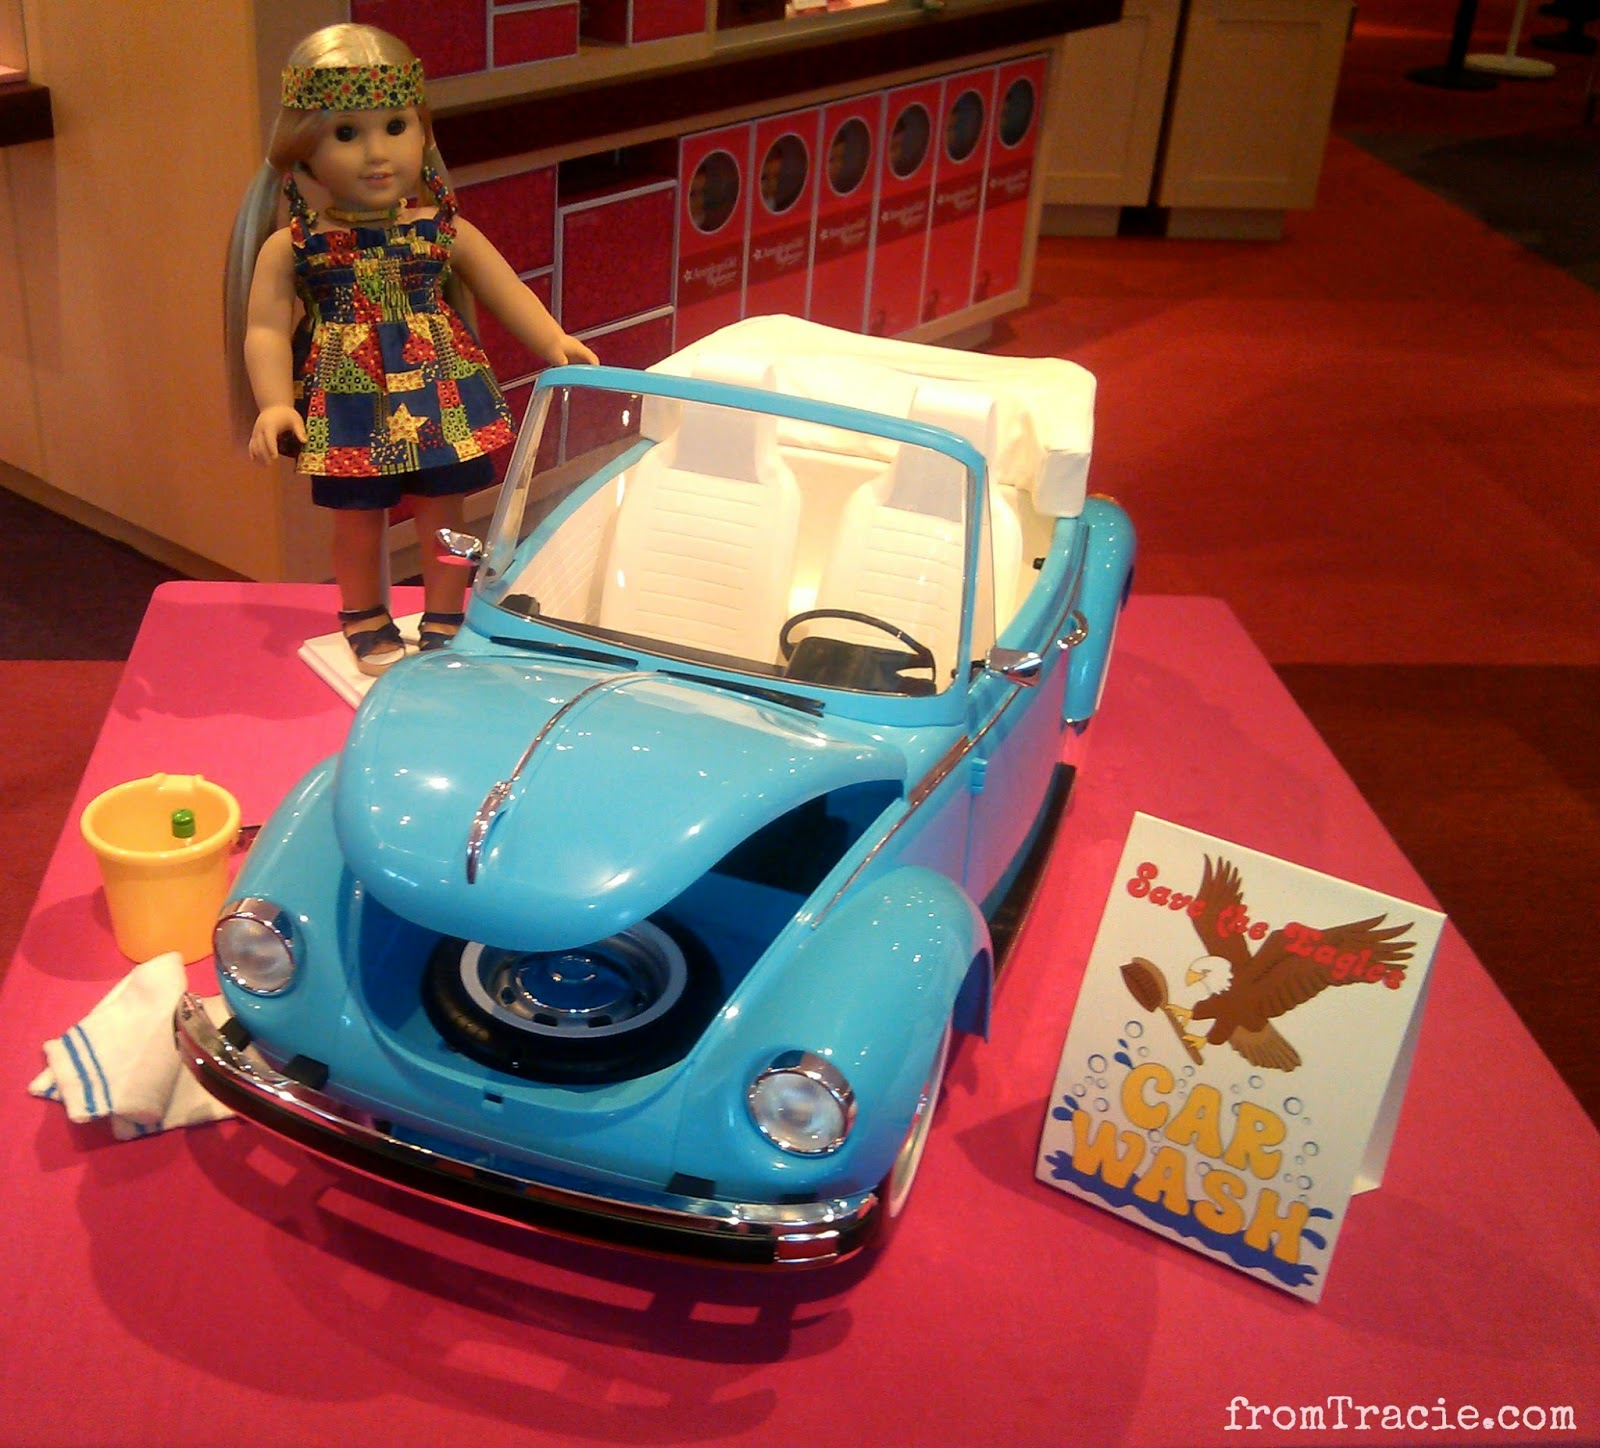 From Tracie: American Girl Store Opening In Orlando